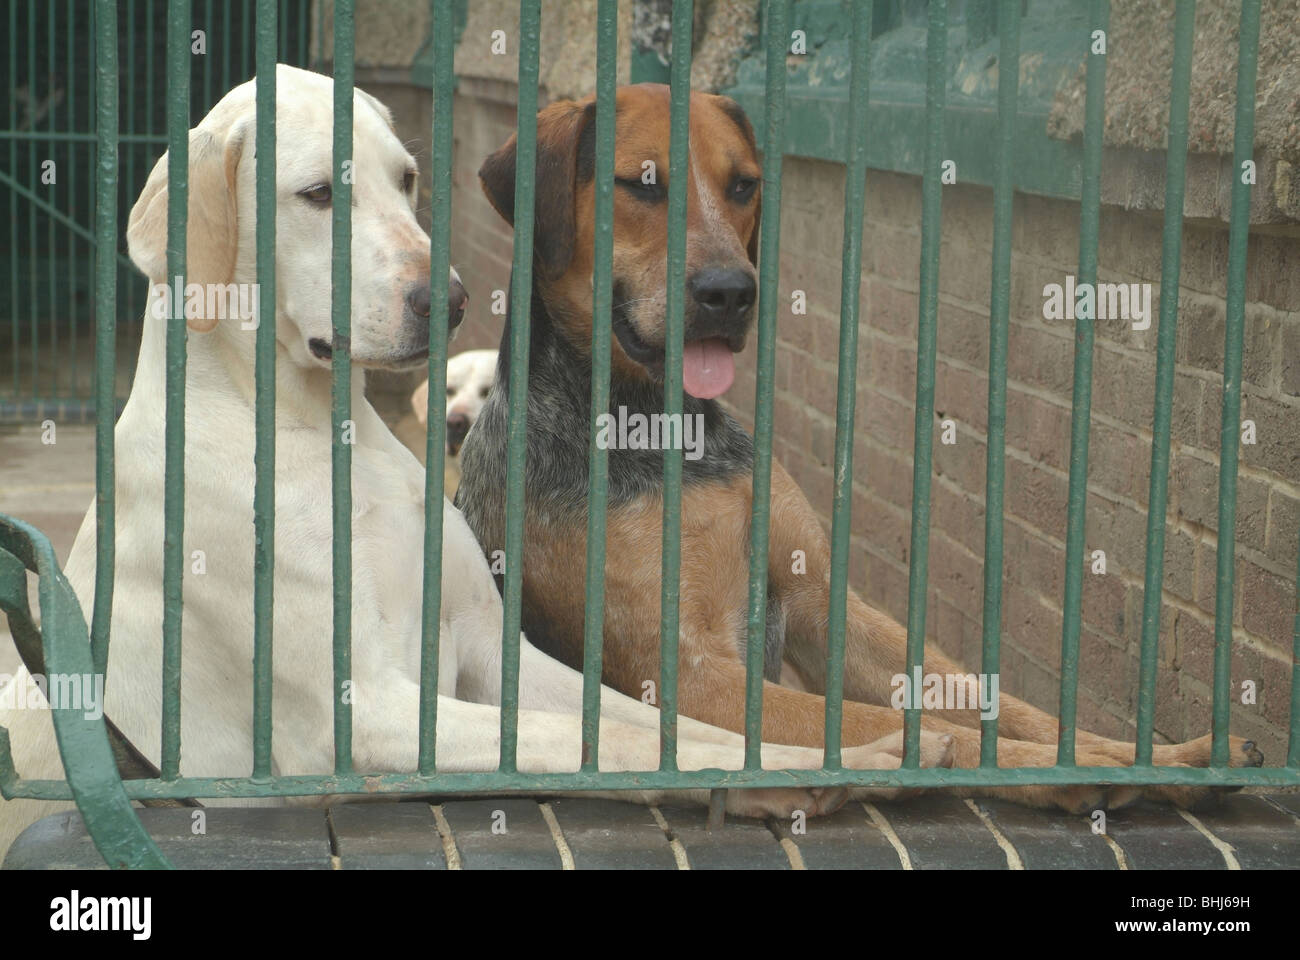 Two hounds in a kennel - Stock Image